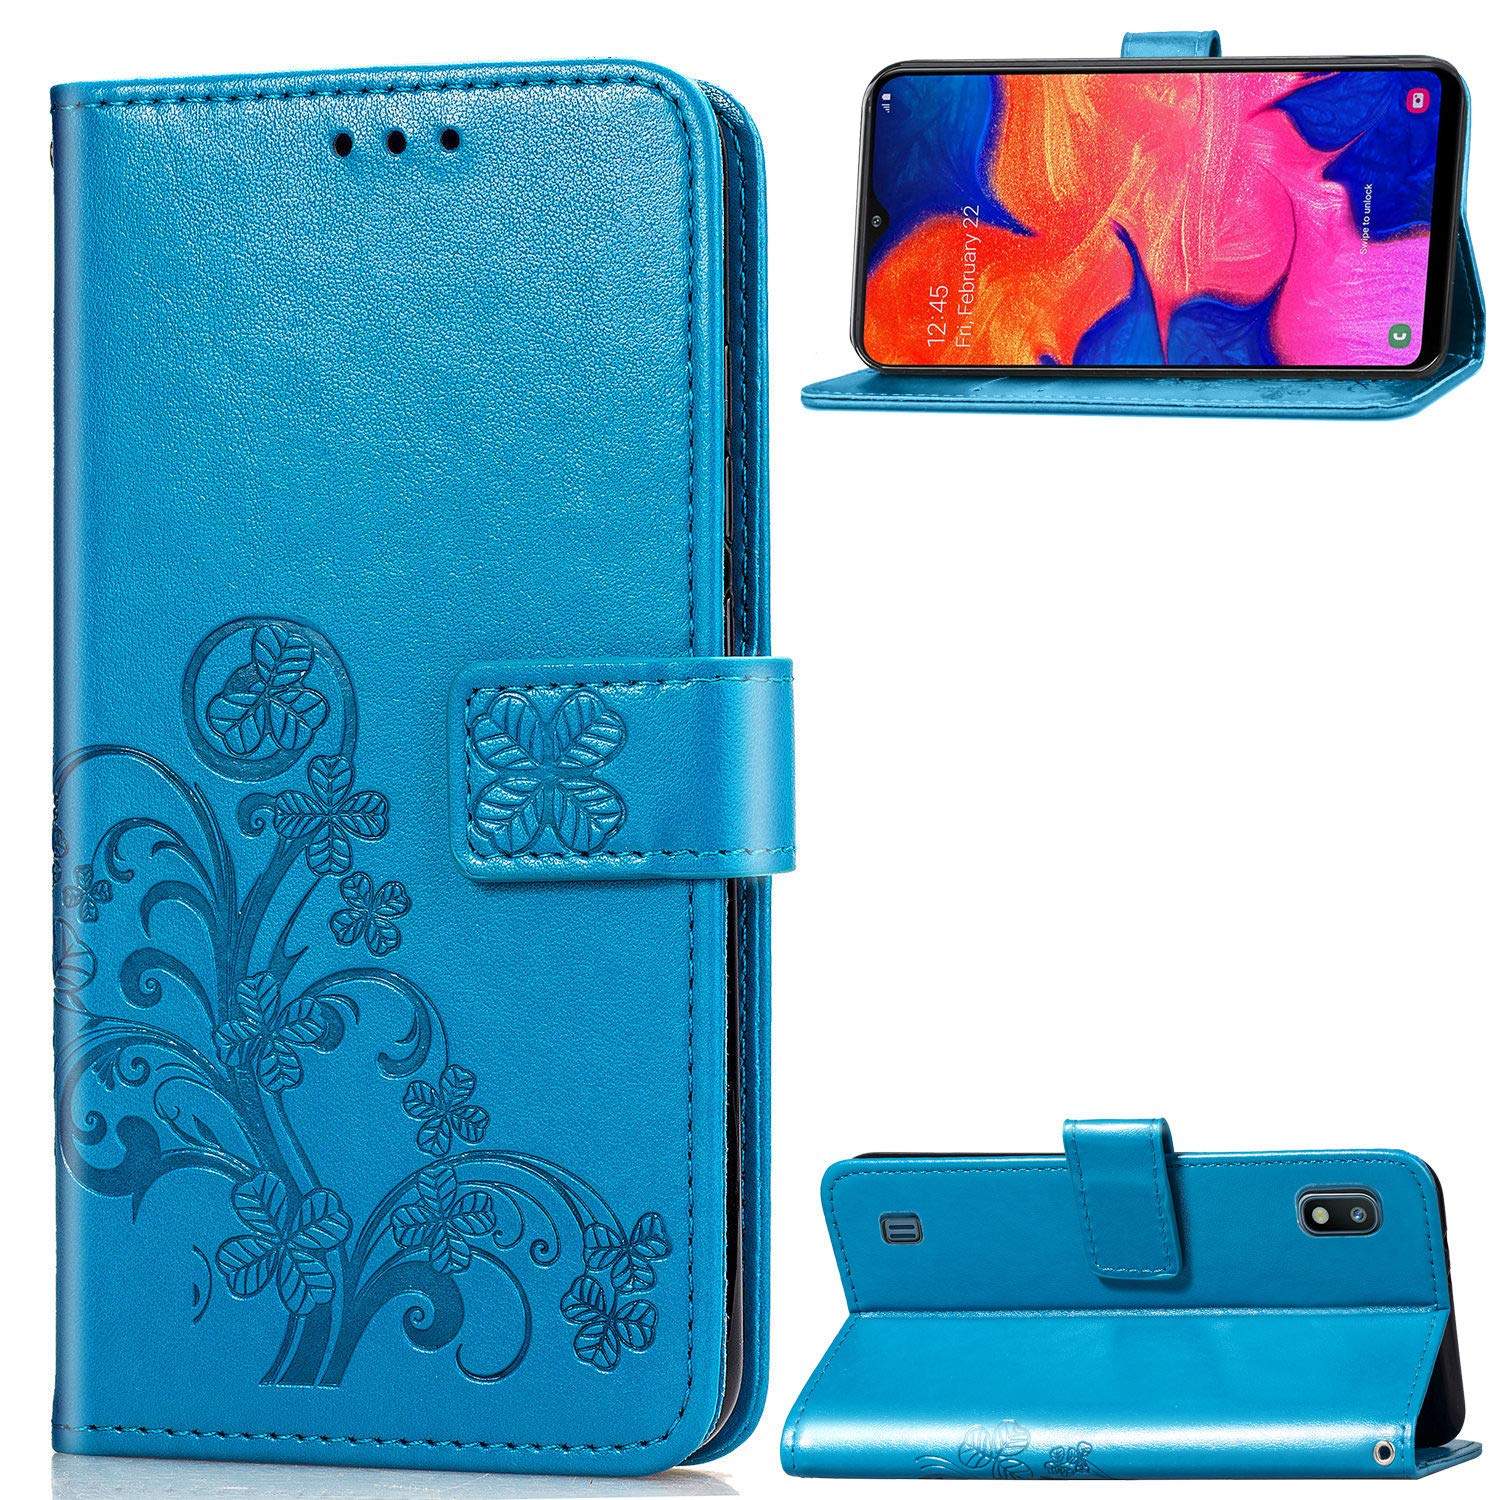 UCMDA Case for Samsung Galaxy A10, Flip Leather Samsung A10 Phone Wallet Case with [Magnetic Closure] [Kickstand] [Card Slot] for Samsung A10-Blue